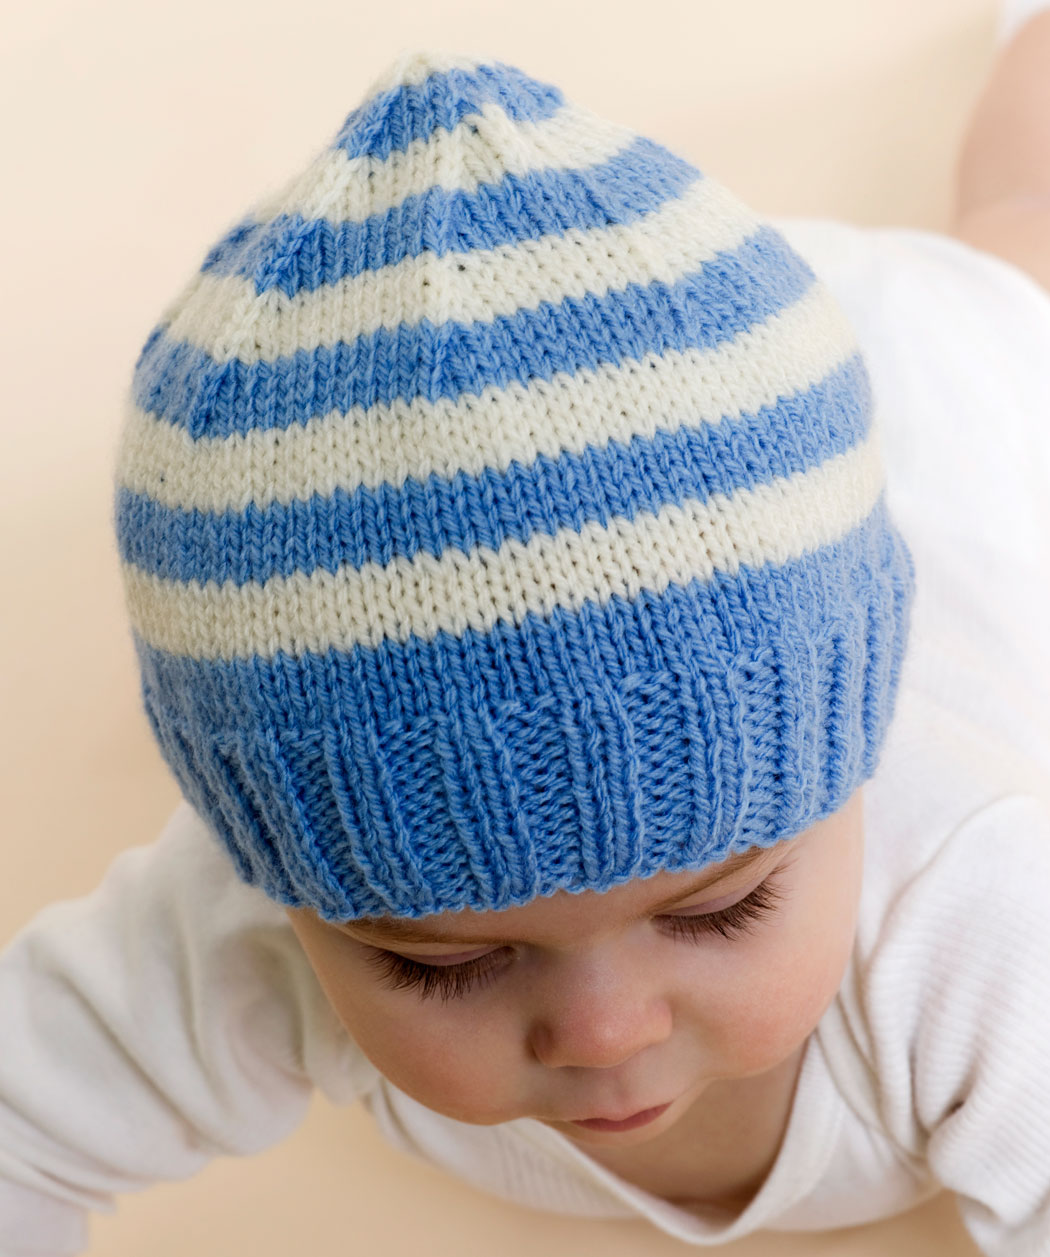 Knitting Pattern For Childs Beanie Hat : Knitting Hats   Tag Hats